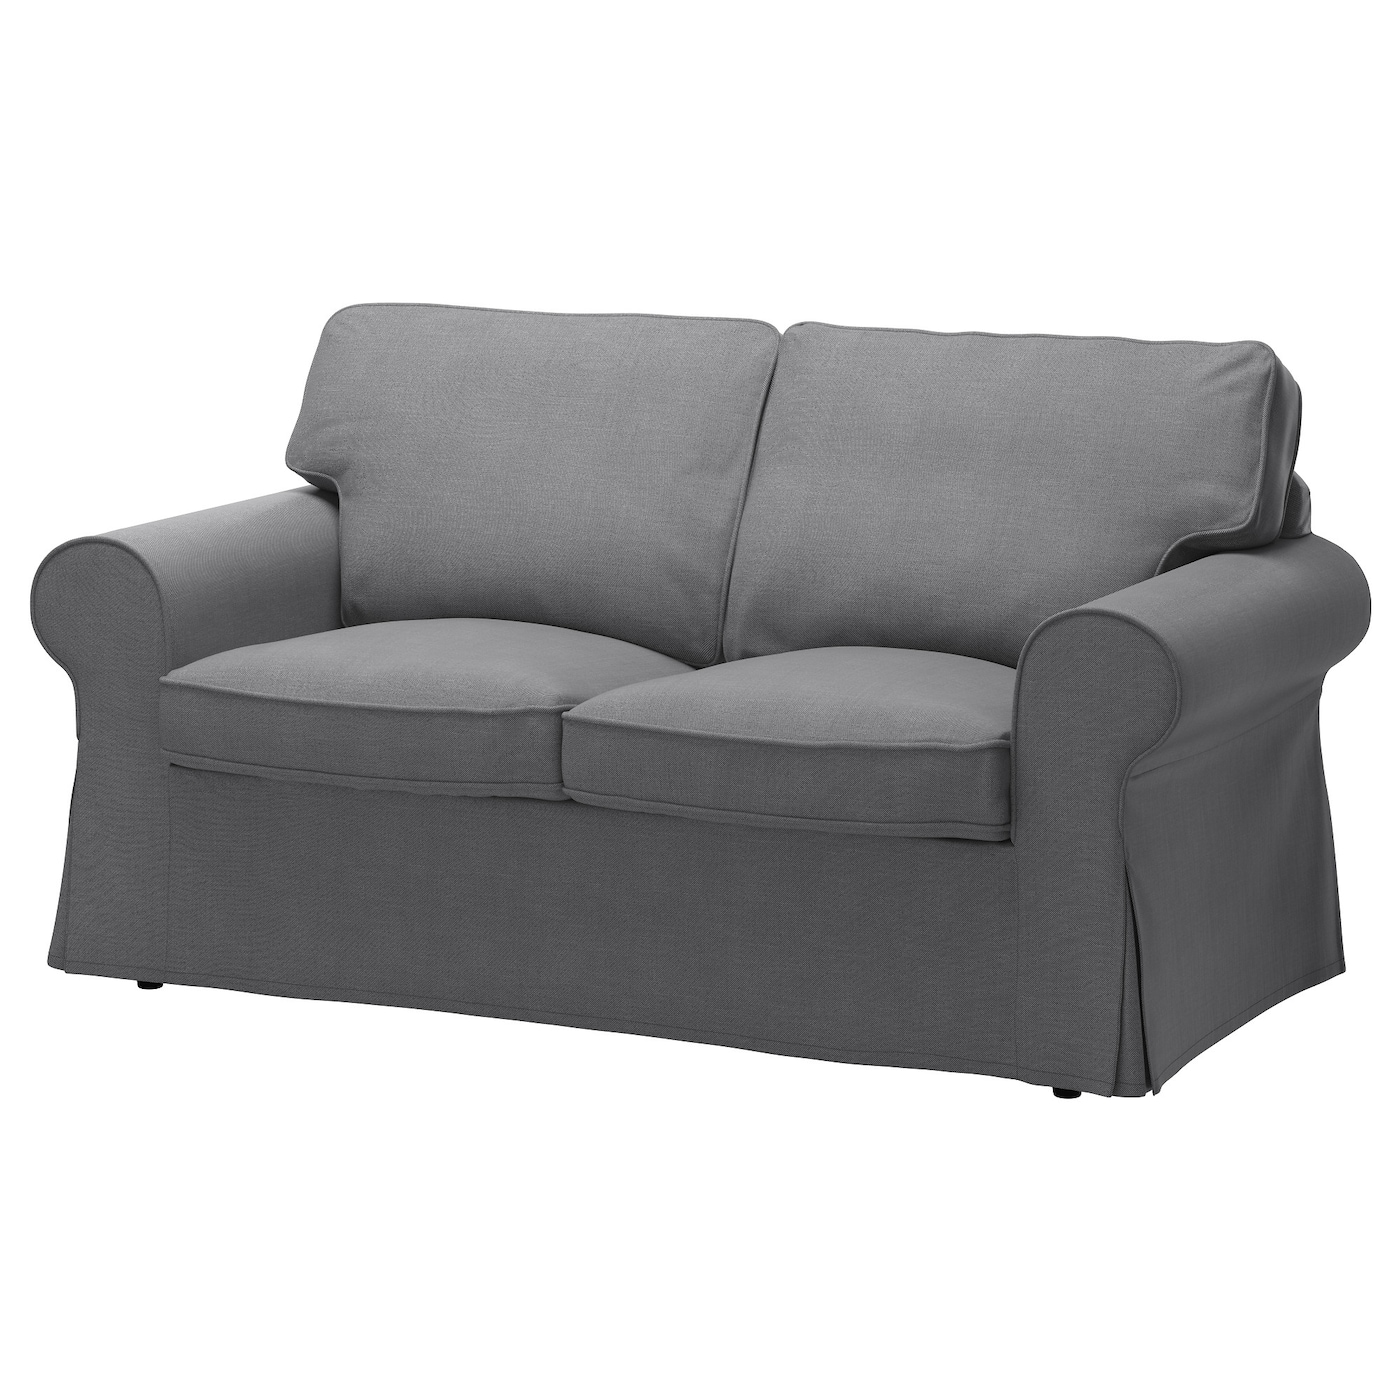 Bankhoes Ikea Bank.Ektorp Cover Two Seat Sofa Nordvalla Dark Grey Ikea